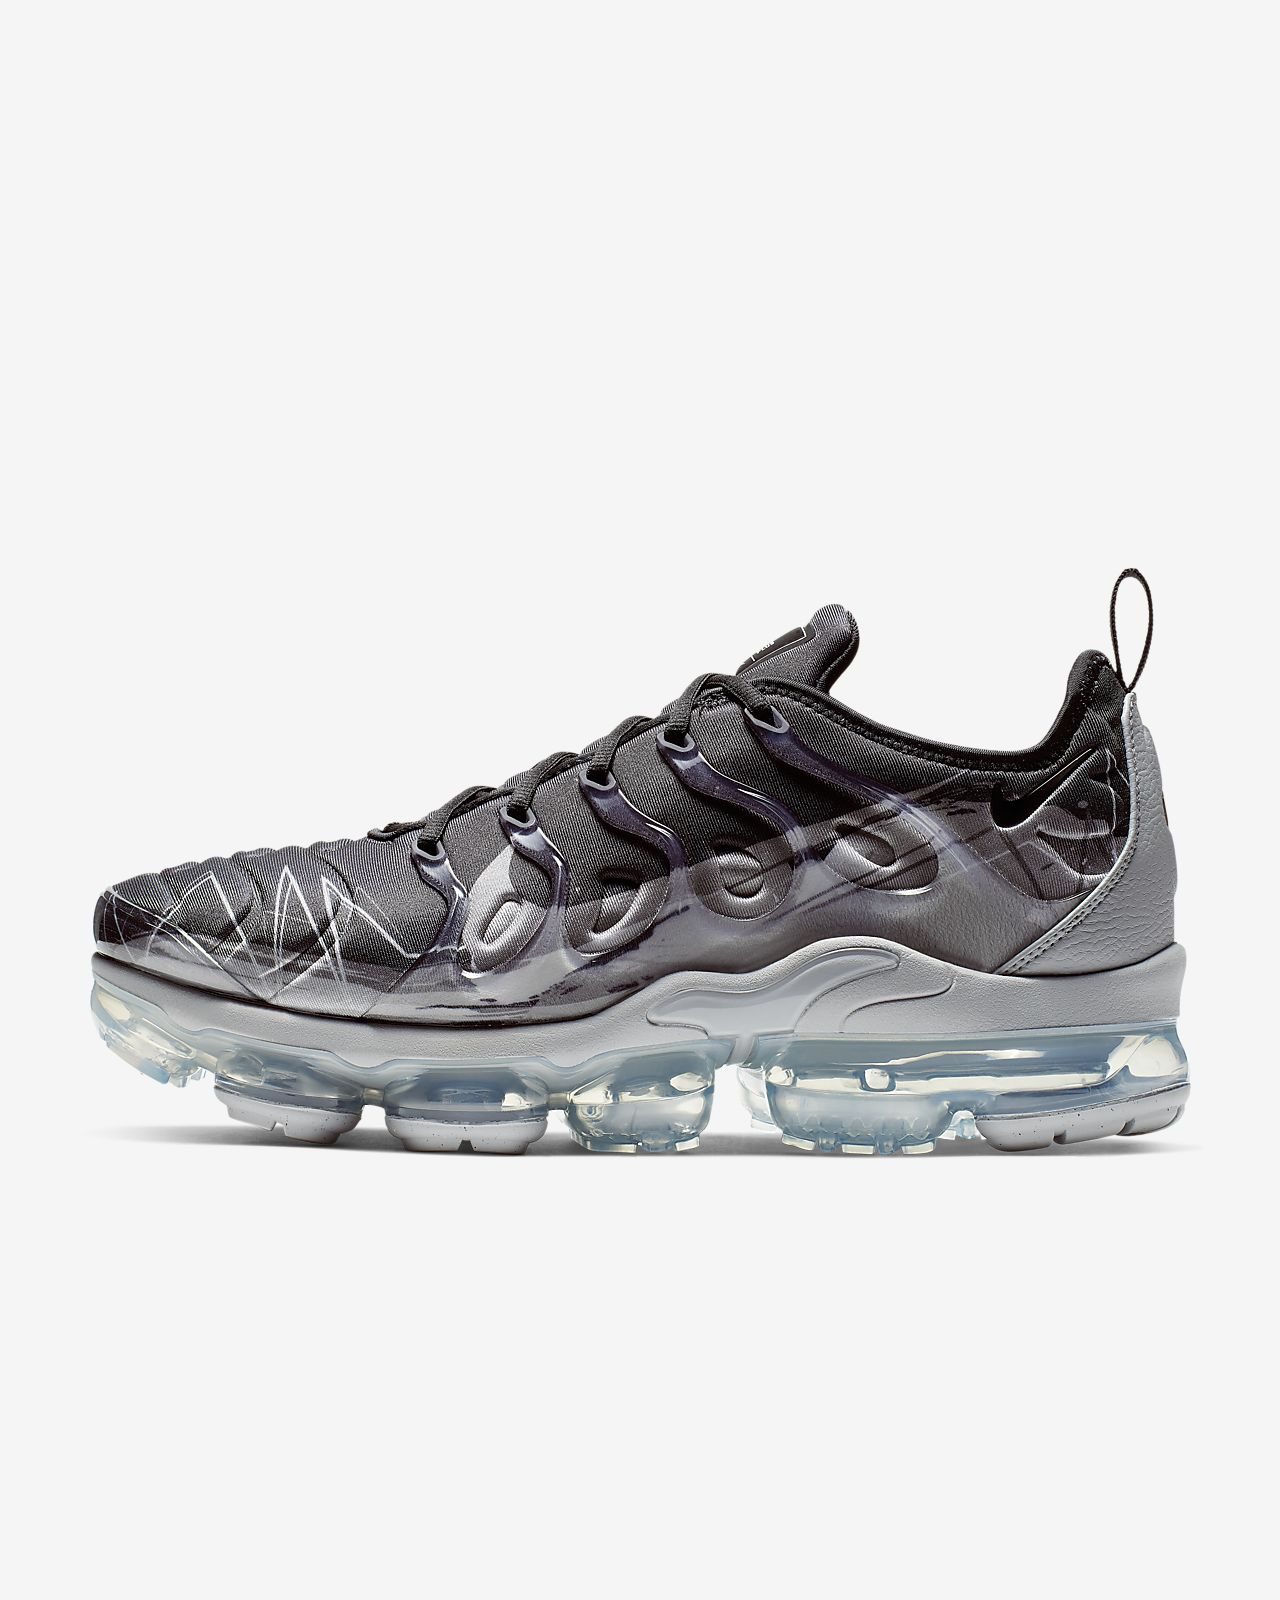 bc9b77544db8d Nike Air VaporMax Plus Men s Shoe. Nike.com GB